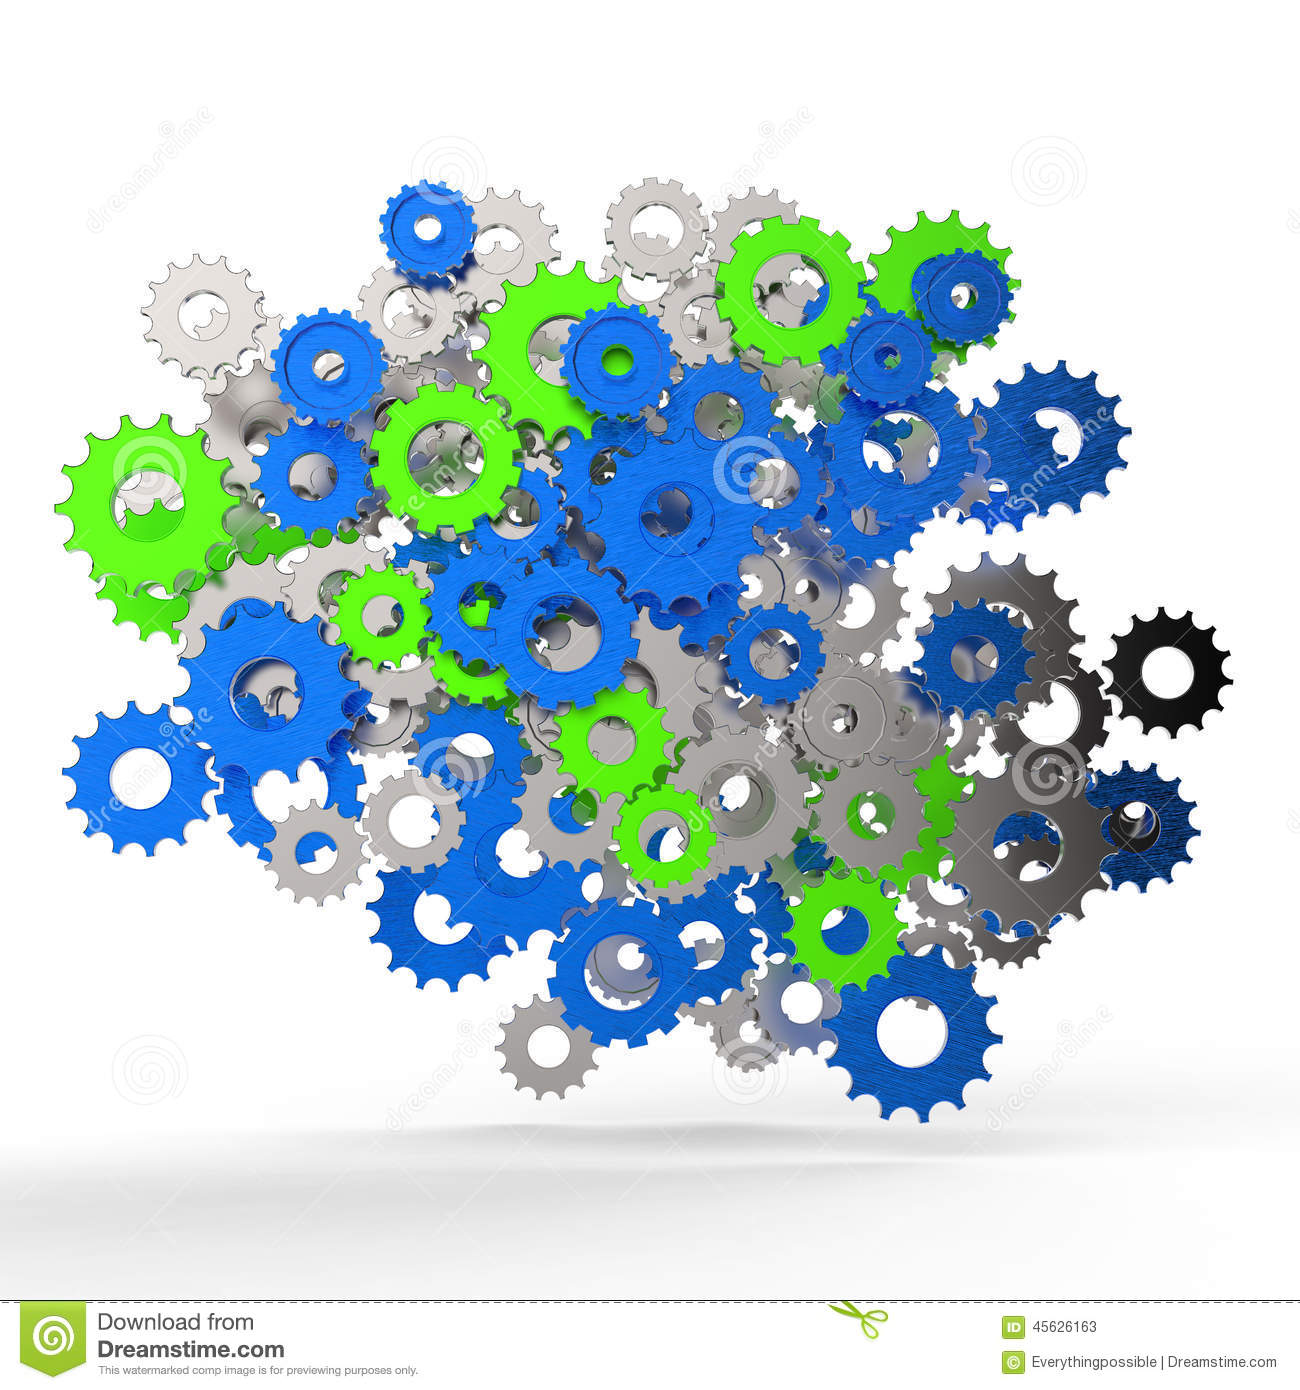 3d Cog Gear On White Background Stock Illustration - Image: 45626163